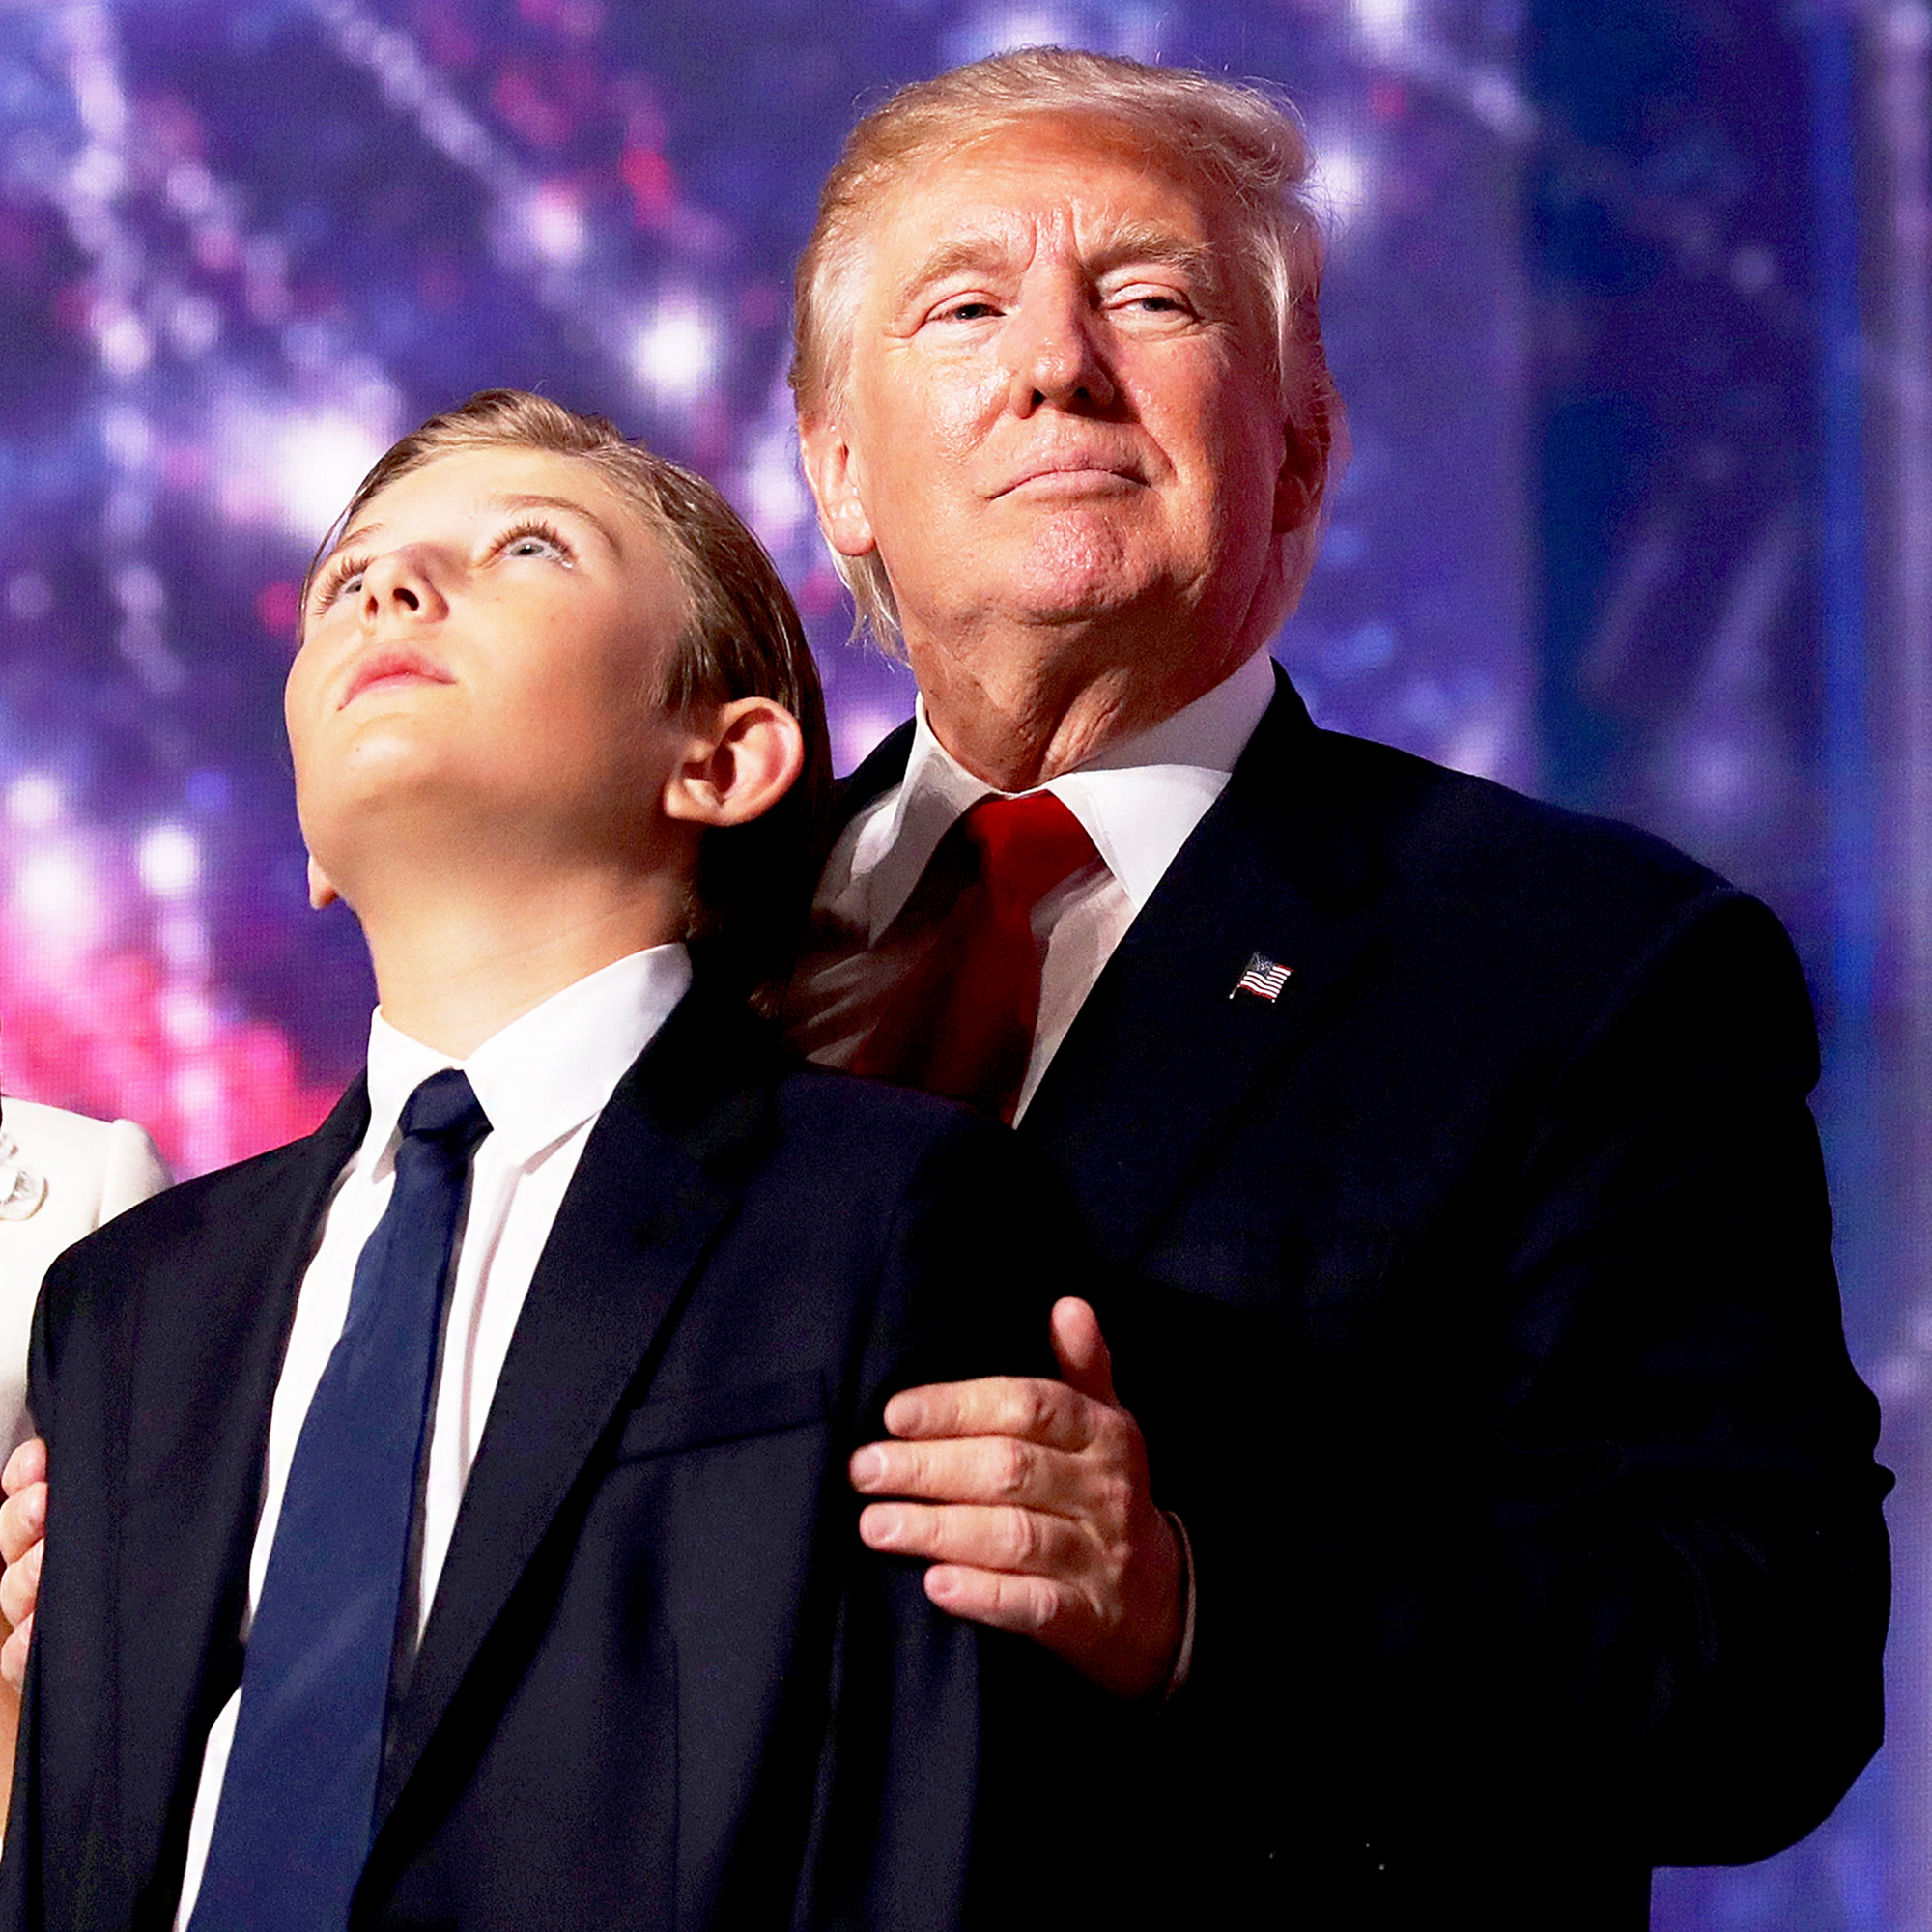 Barron Trump and Donald Trump